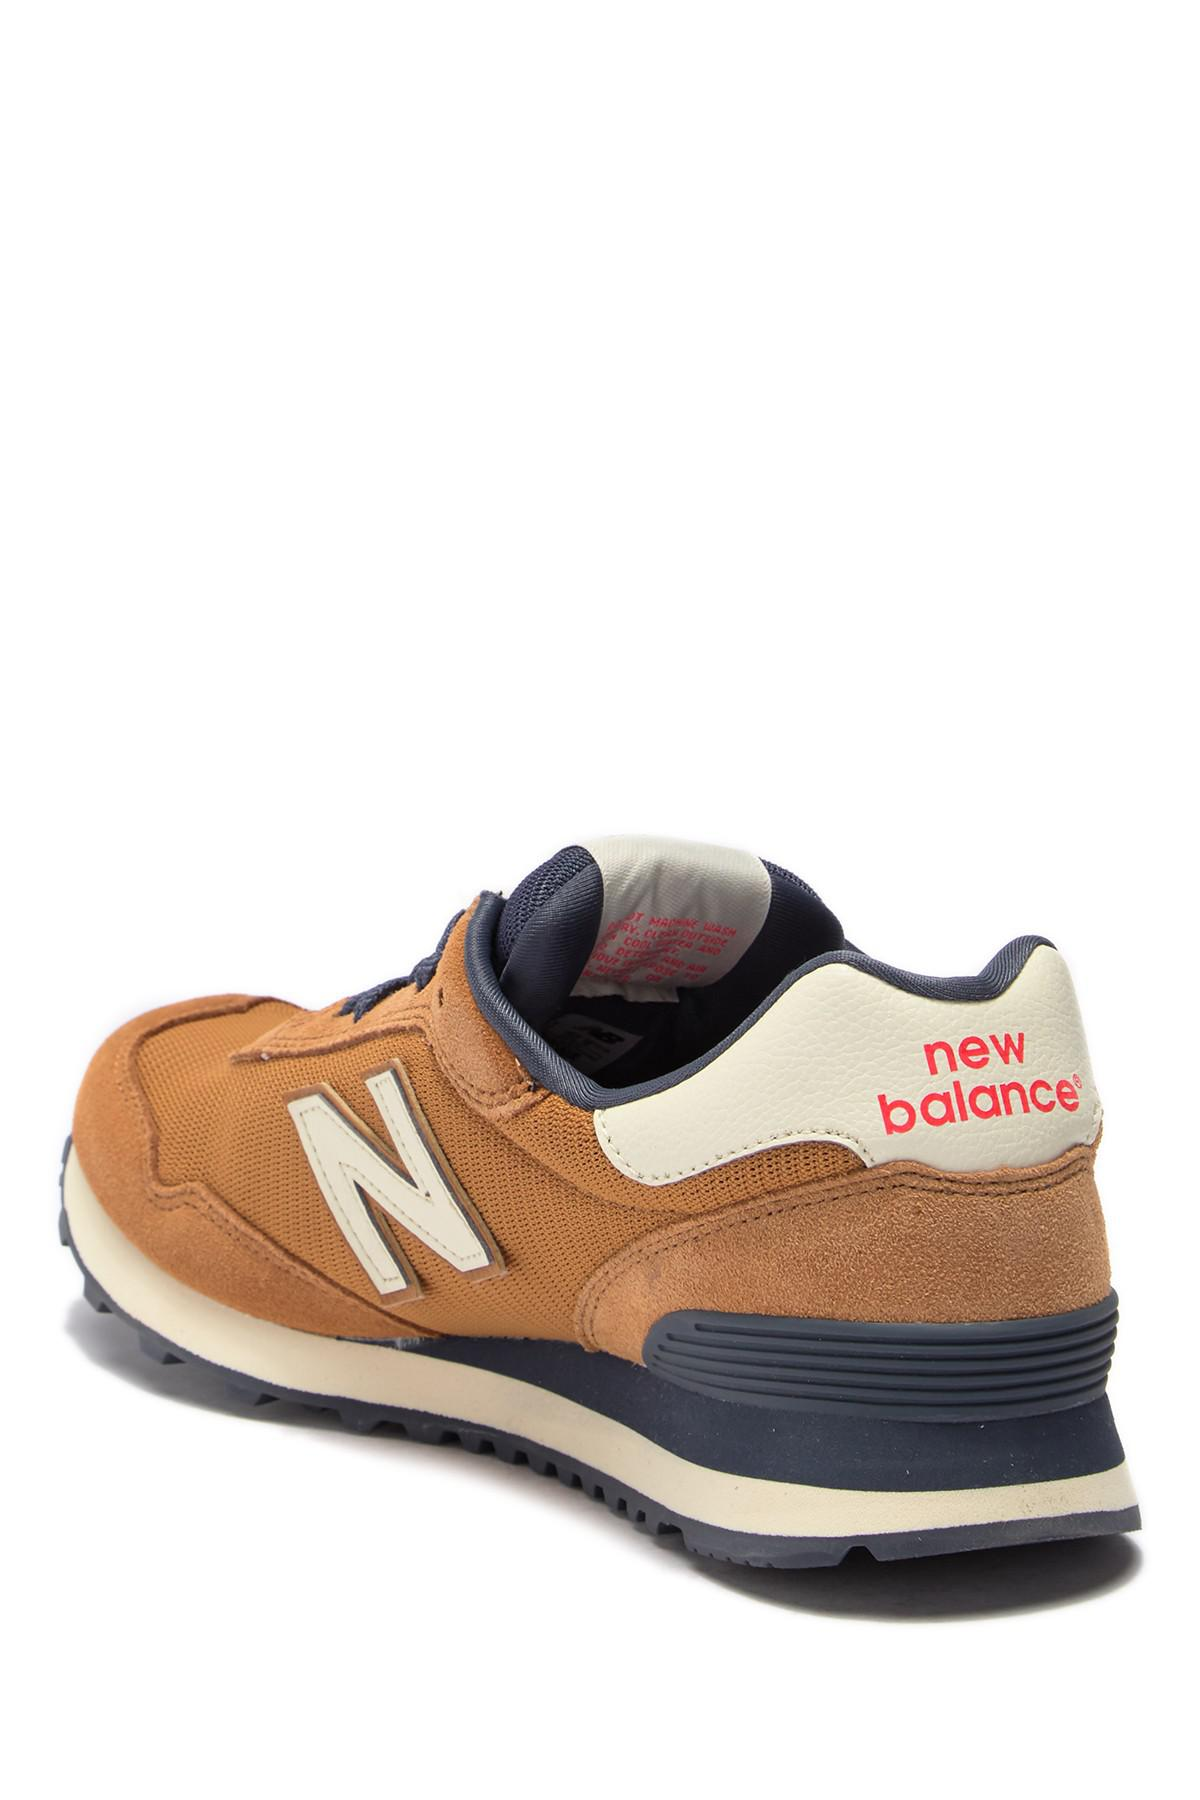 New Balance Suede 515 Classic Sneaker in Brown for Men - Lyst